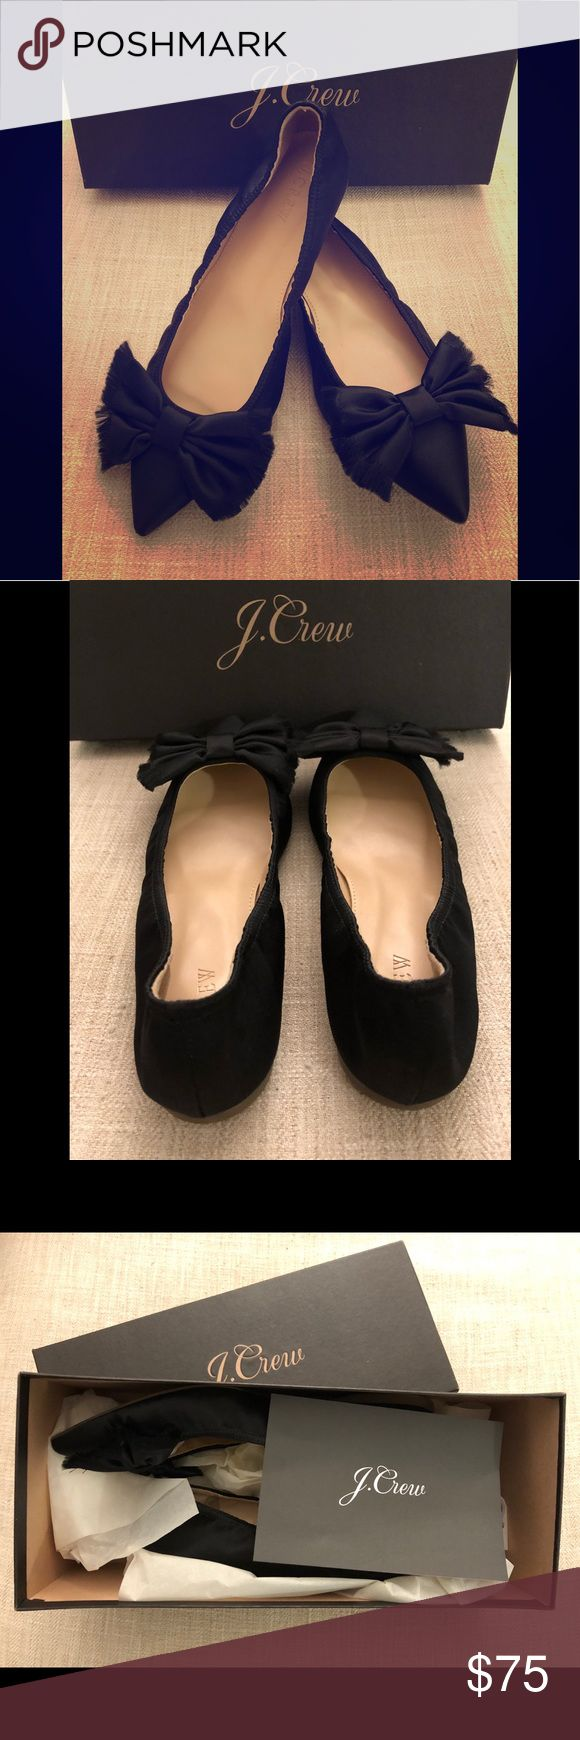 NWT J.Crew Lottie frayed bow flats in black satin NWT J.Crew Lottie frayed bow flats in black satin size 7. Ballet flats have flexible rubber soles and cotton/polystyrene upper. Never Worn. Comes with original box. Runs a bit small. J. Crew Shoes Flats & Loafers